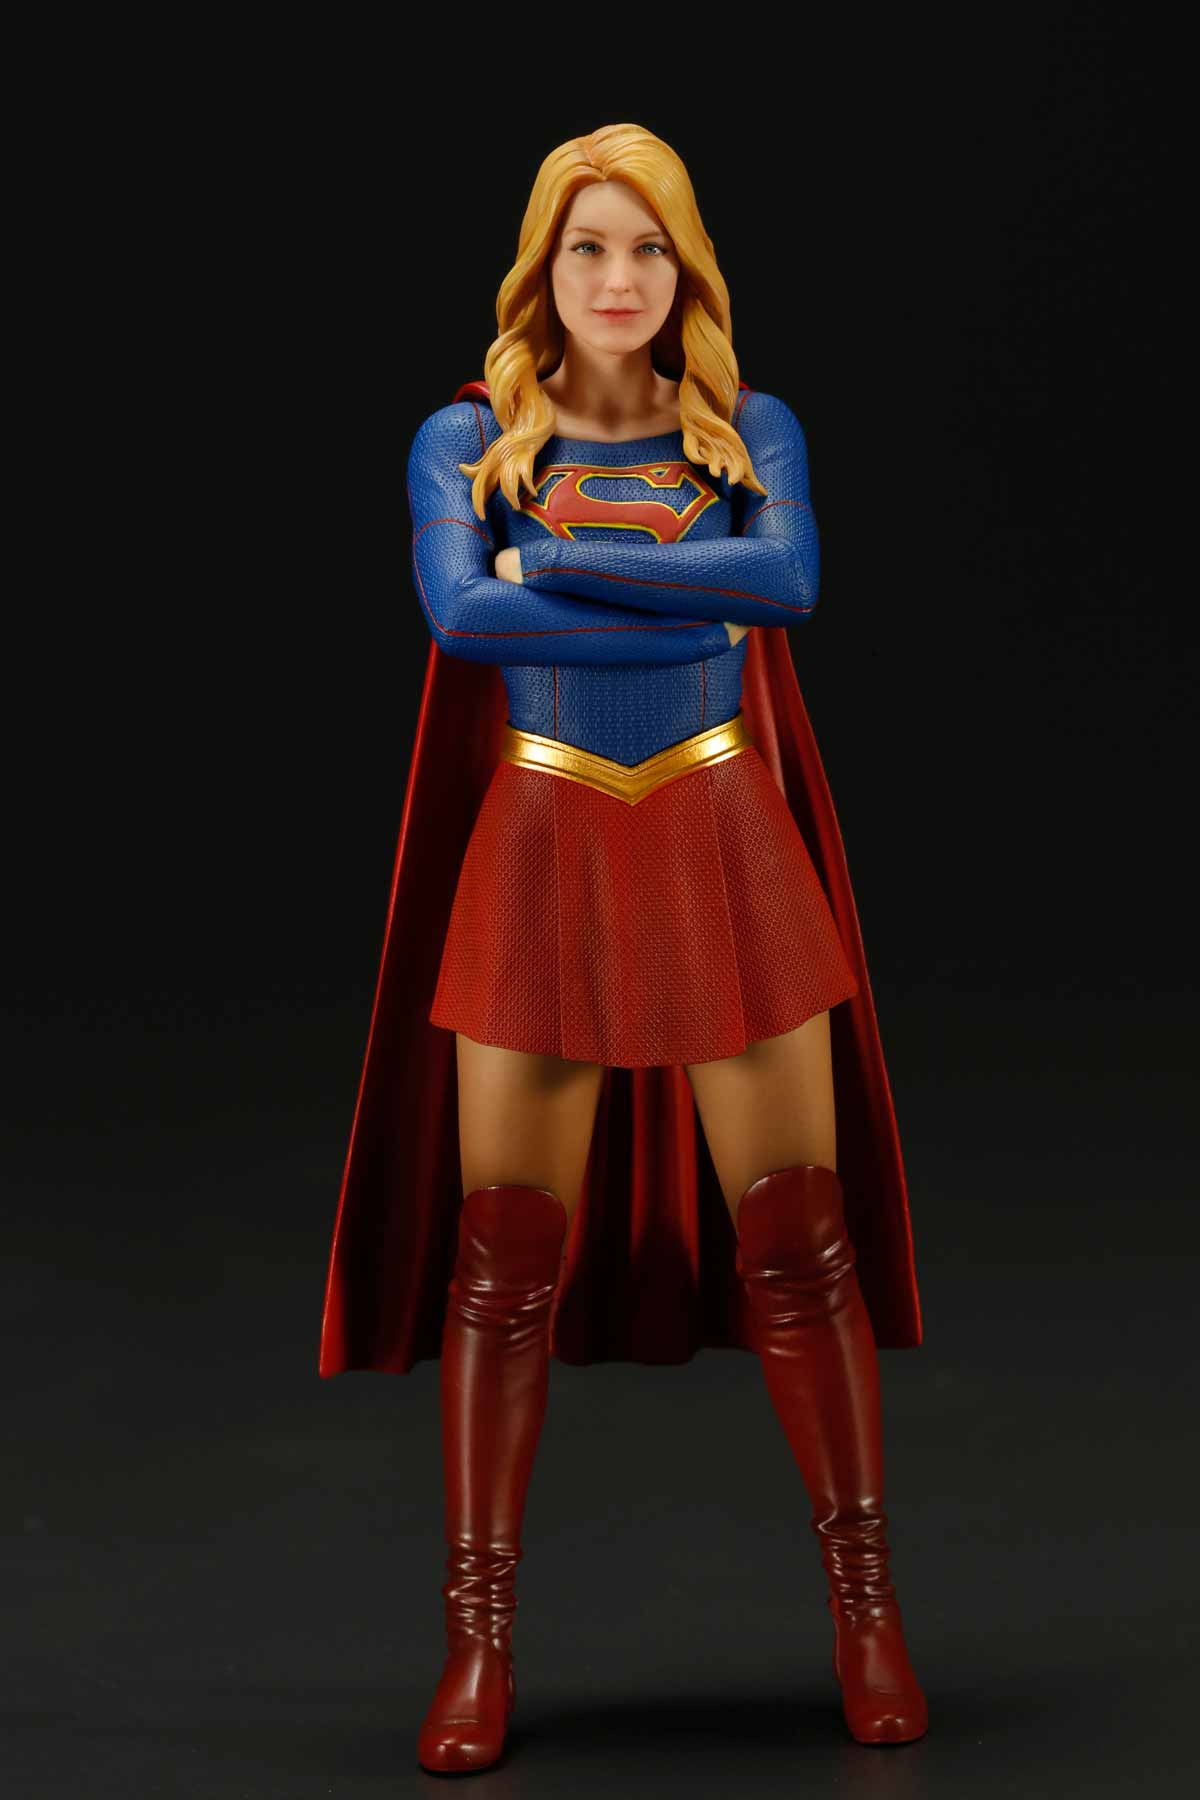 super girl Tvguide has every full episode so you can stay-up-to-date and watch your favorite show supergirl anytime, anywhere.